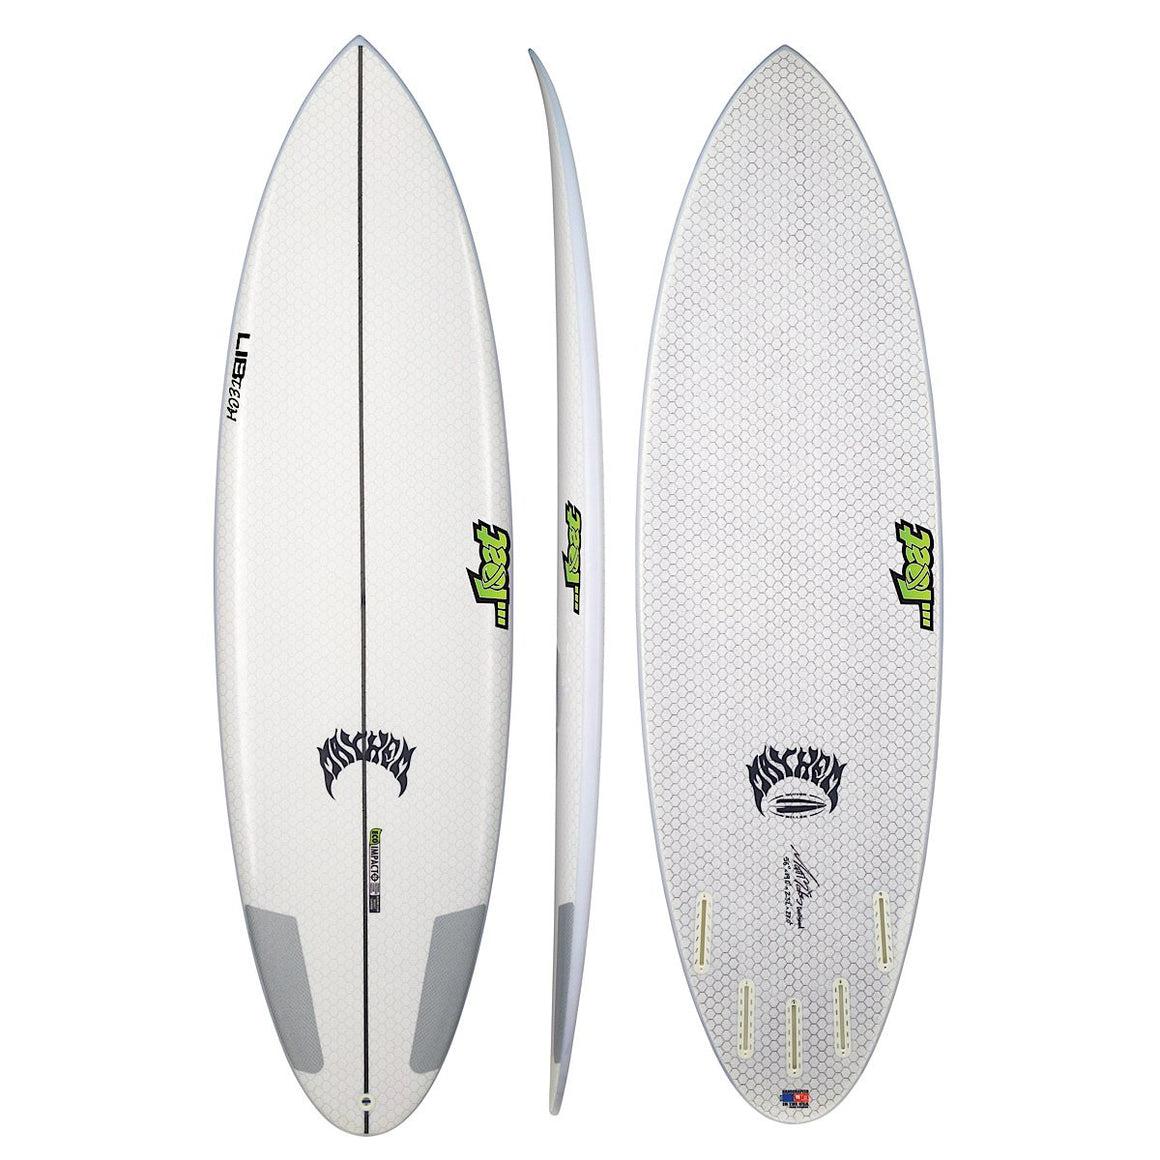 Libtech - Lost Quiver Killer 6'2 (FCSII compatible)